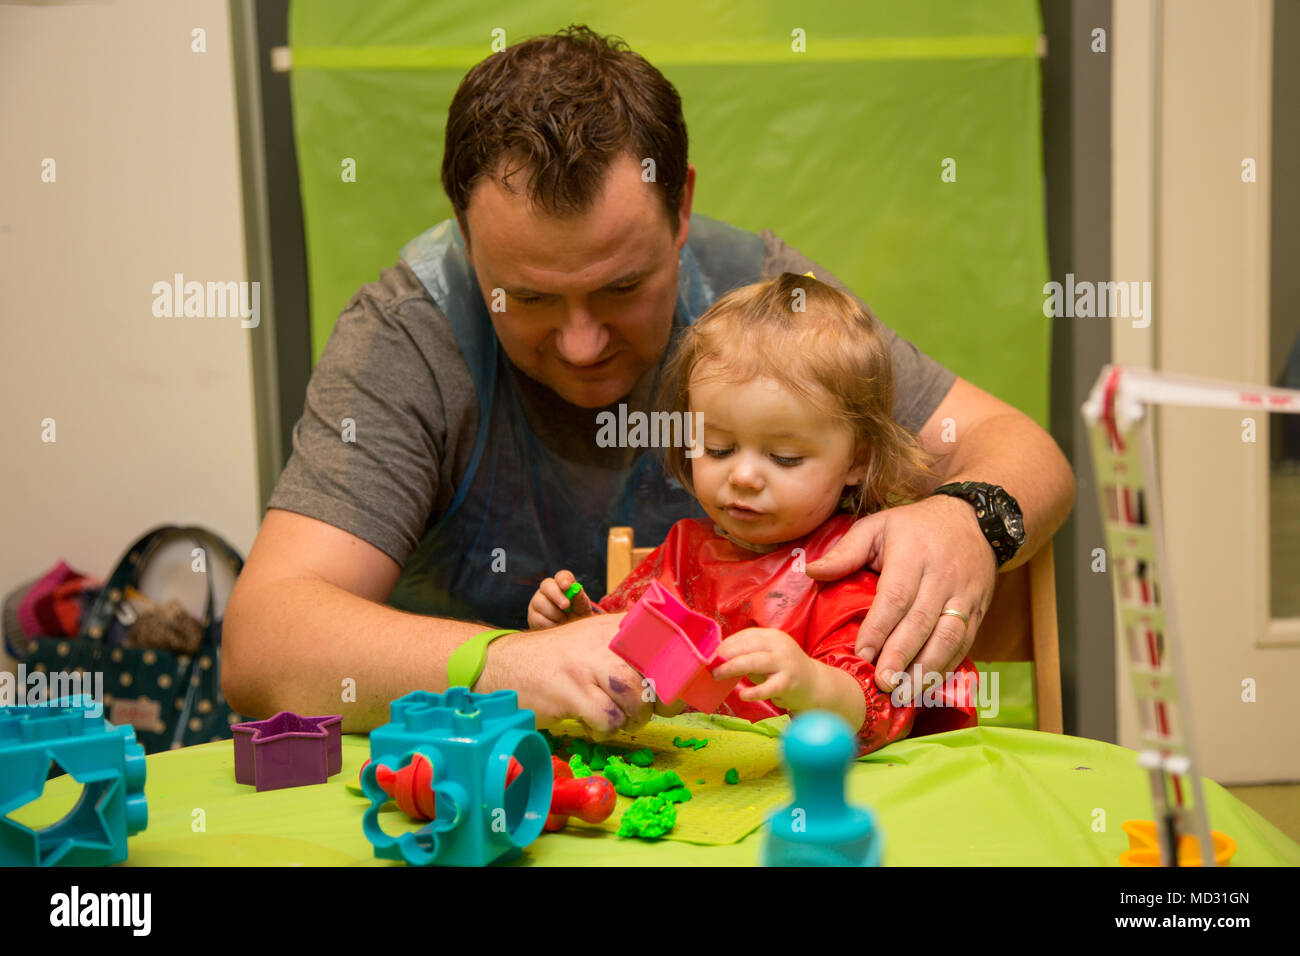 Father and daughter at messy play - Stock Image